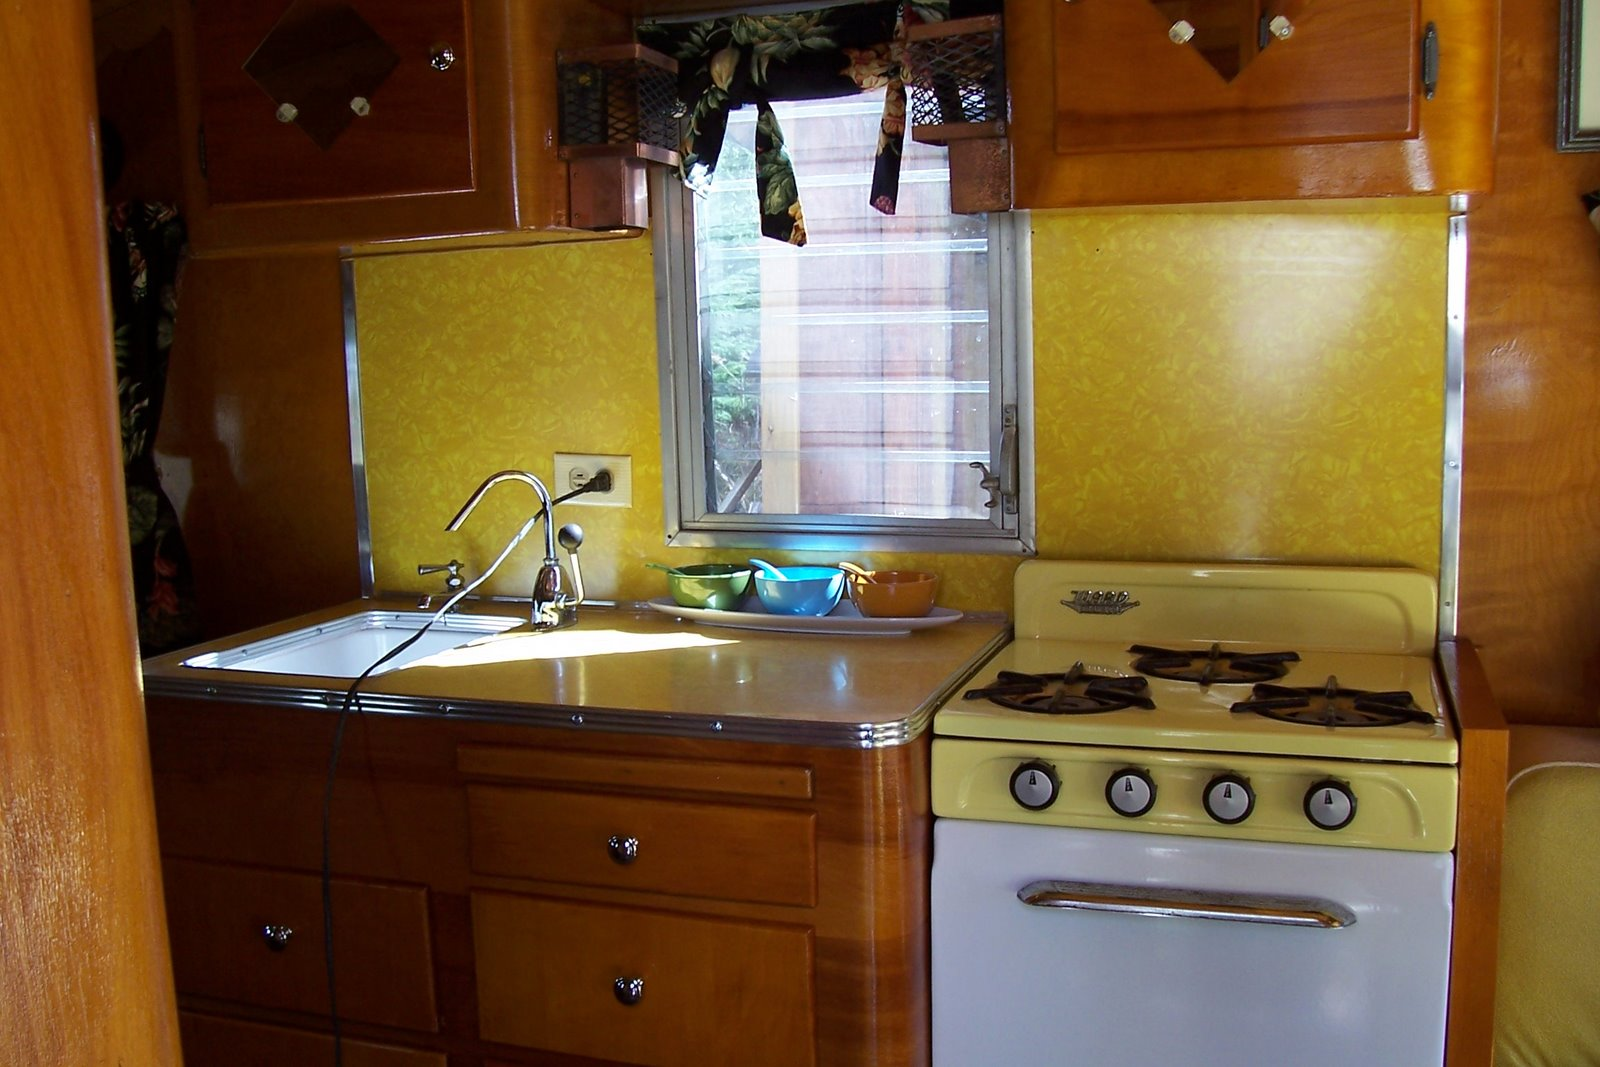 This Trailer Had The Original Dinette Seats Appliances Vinyl Flooring And Crushed Ice Yellow Formica Counter Backsplash Table